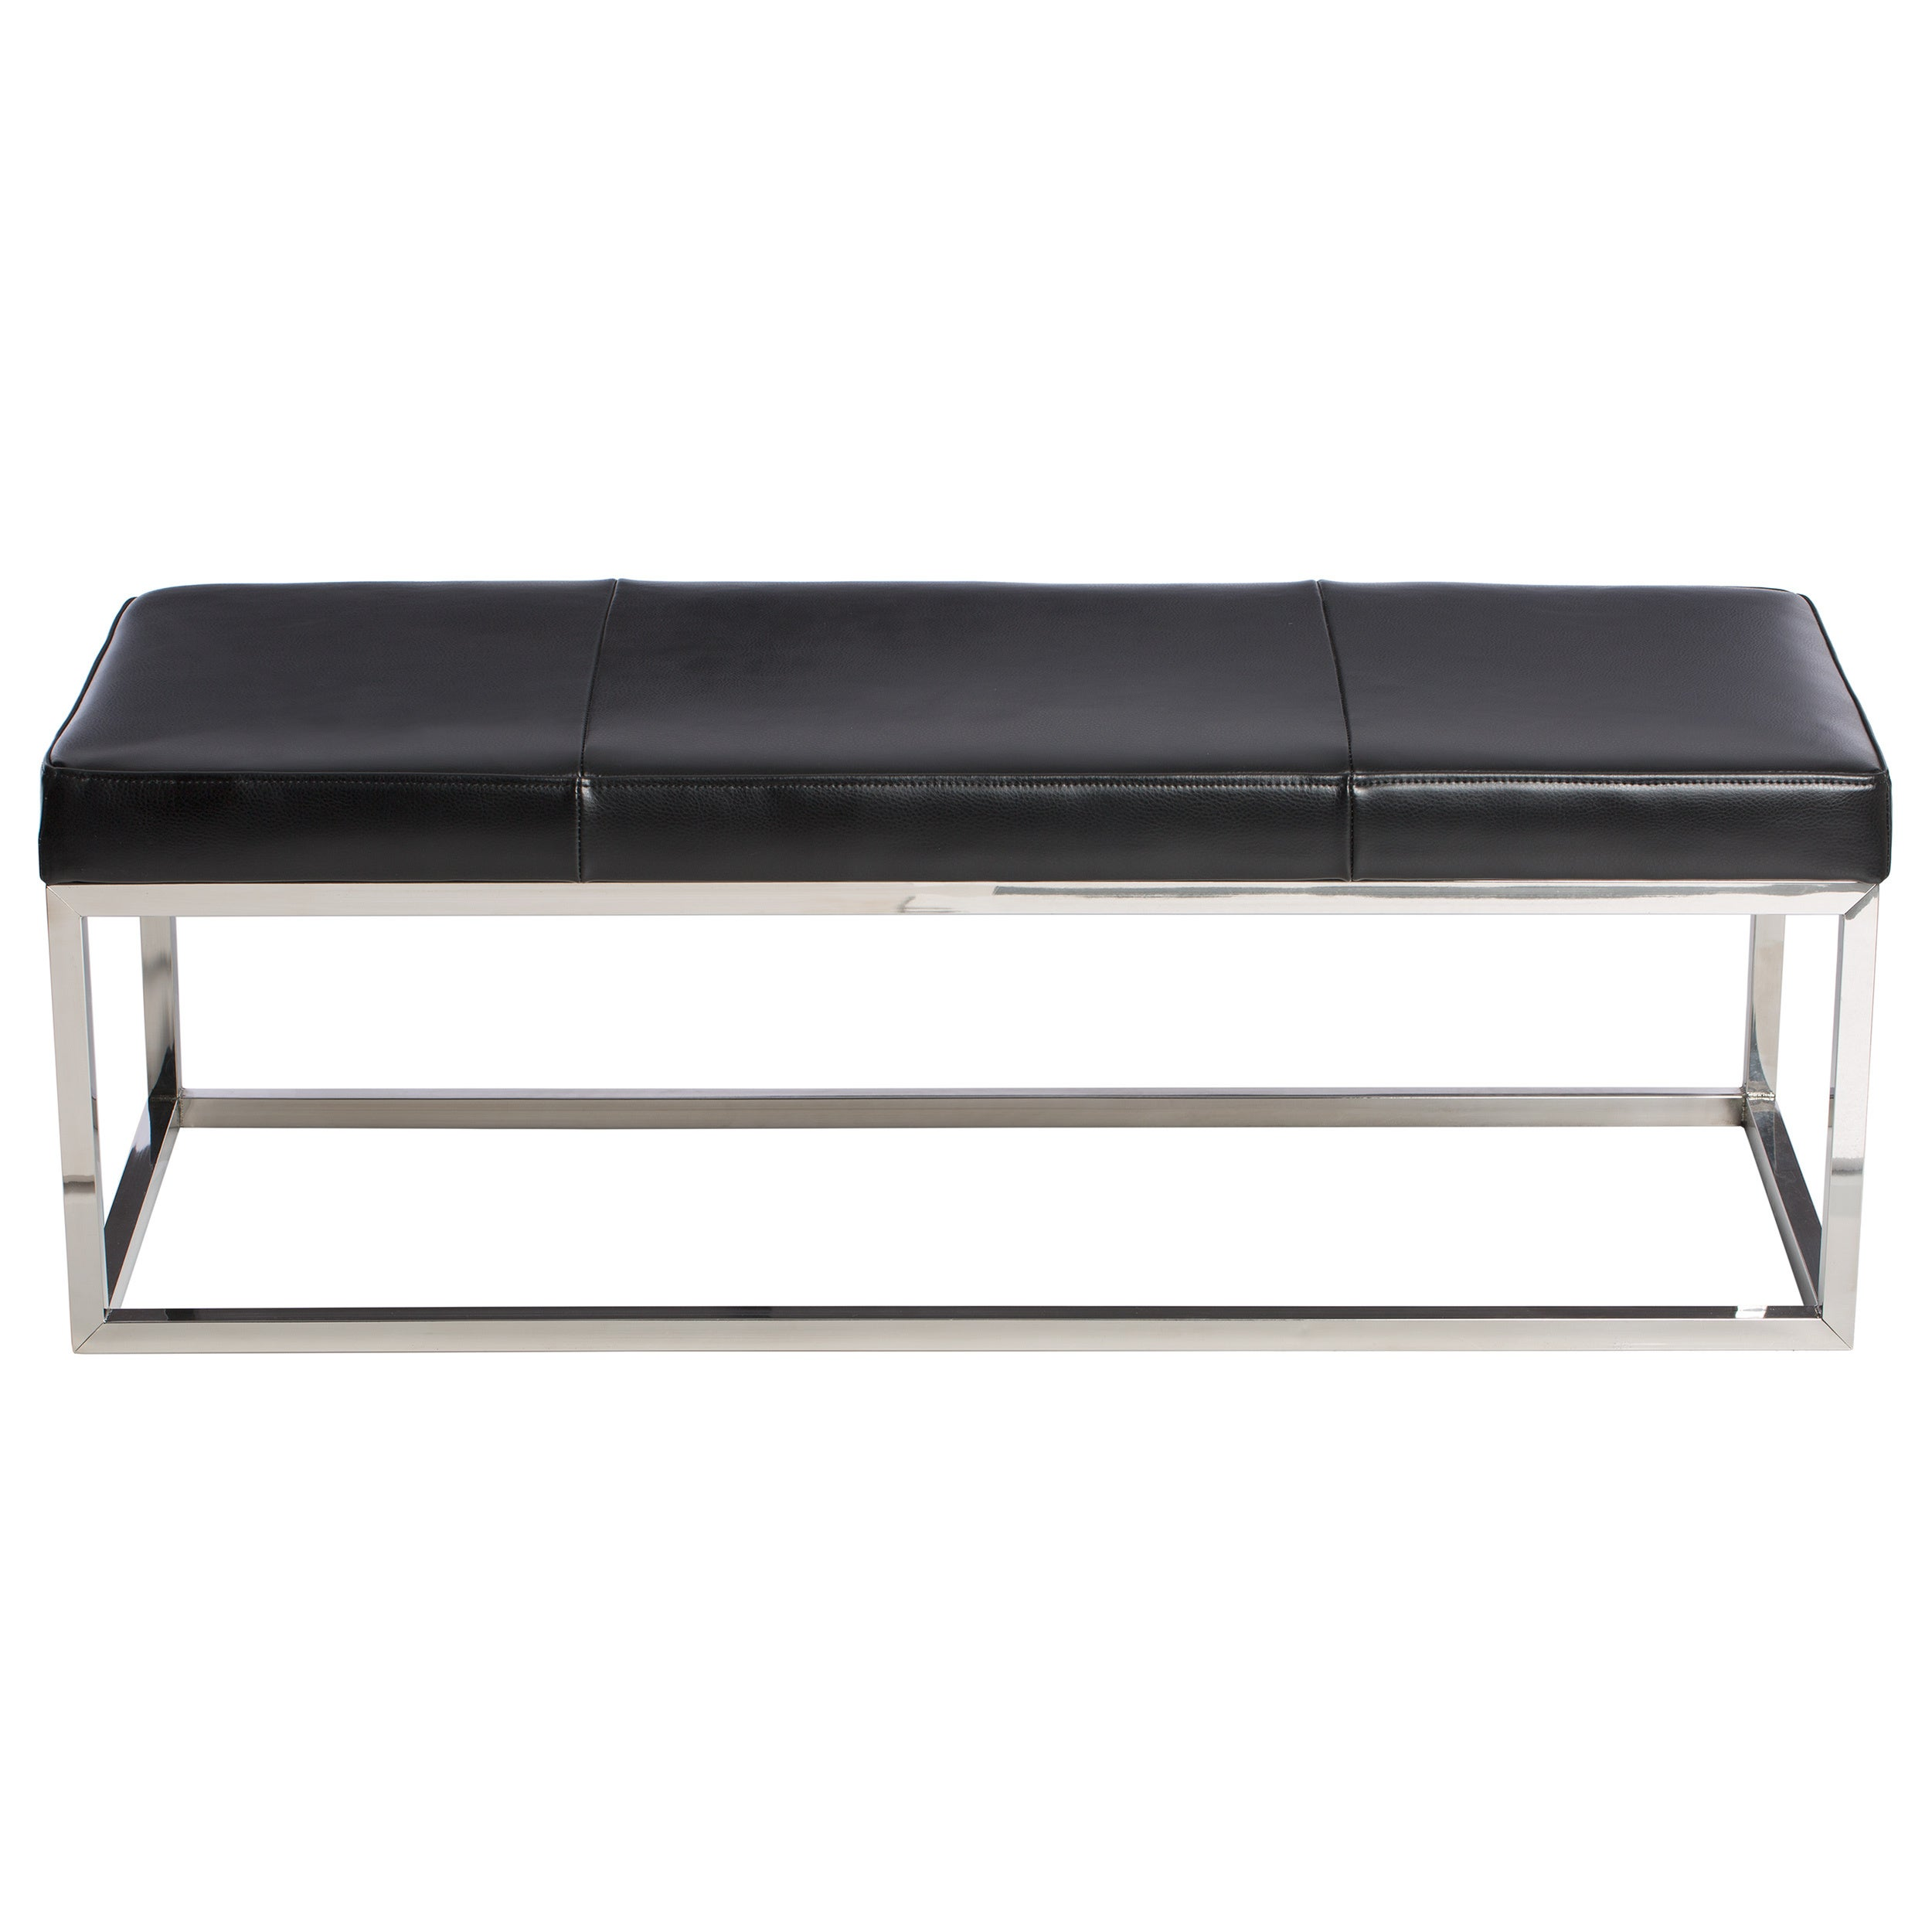 manhattan black and stainless steel modern leather bench  free shippingtoday  overstockcom  . manhattan black and stainless steel modern leather bench  free